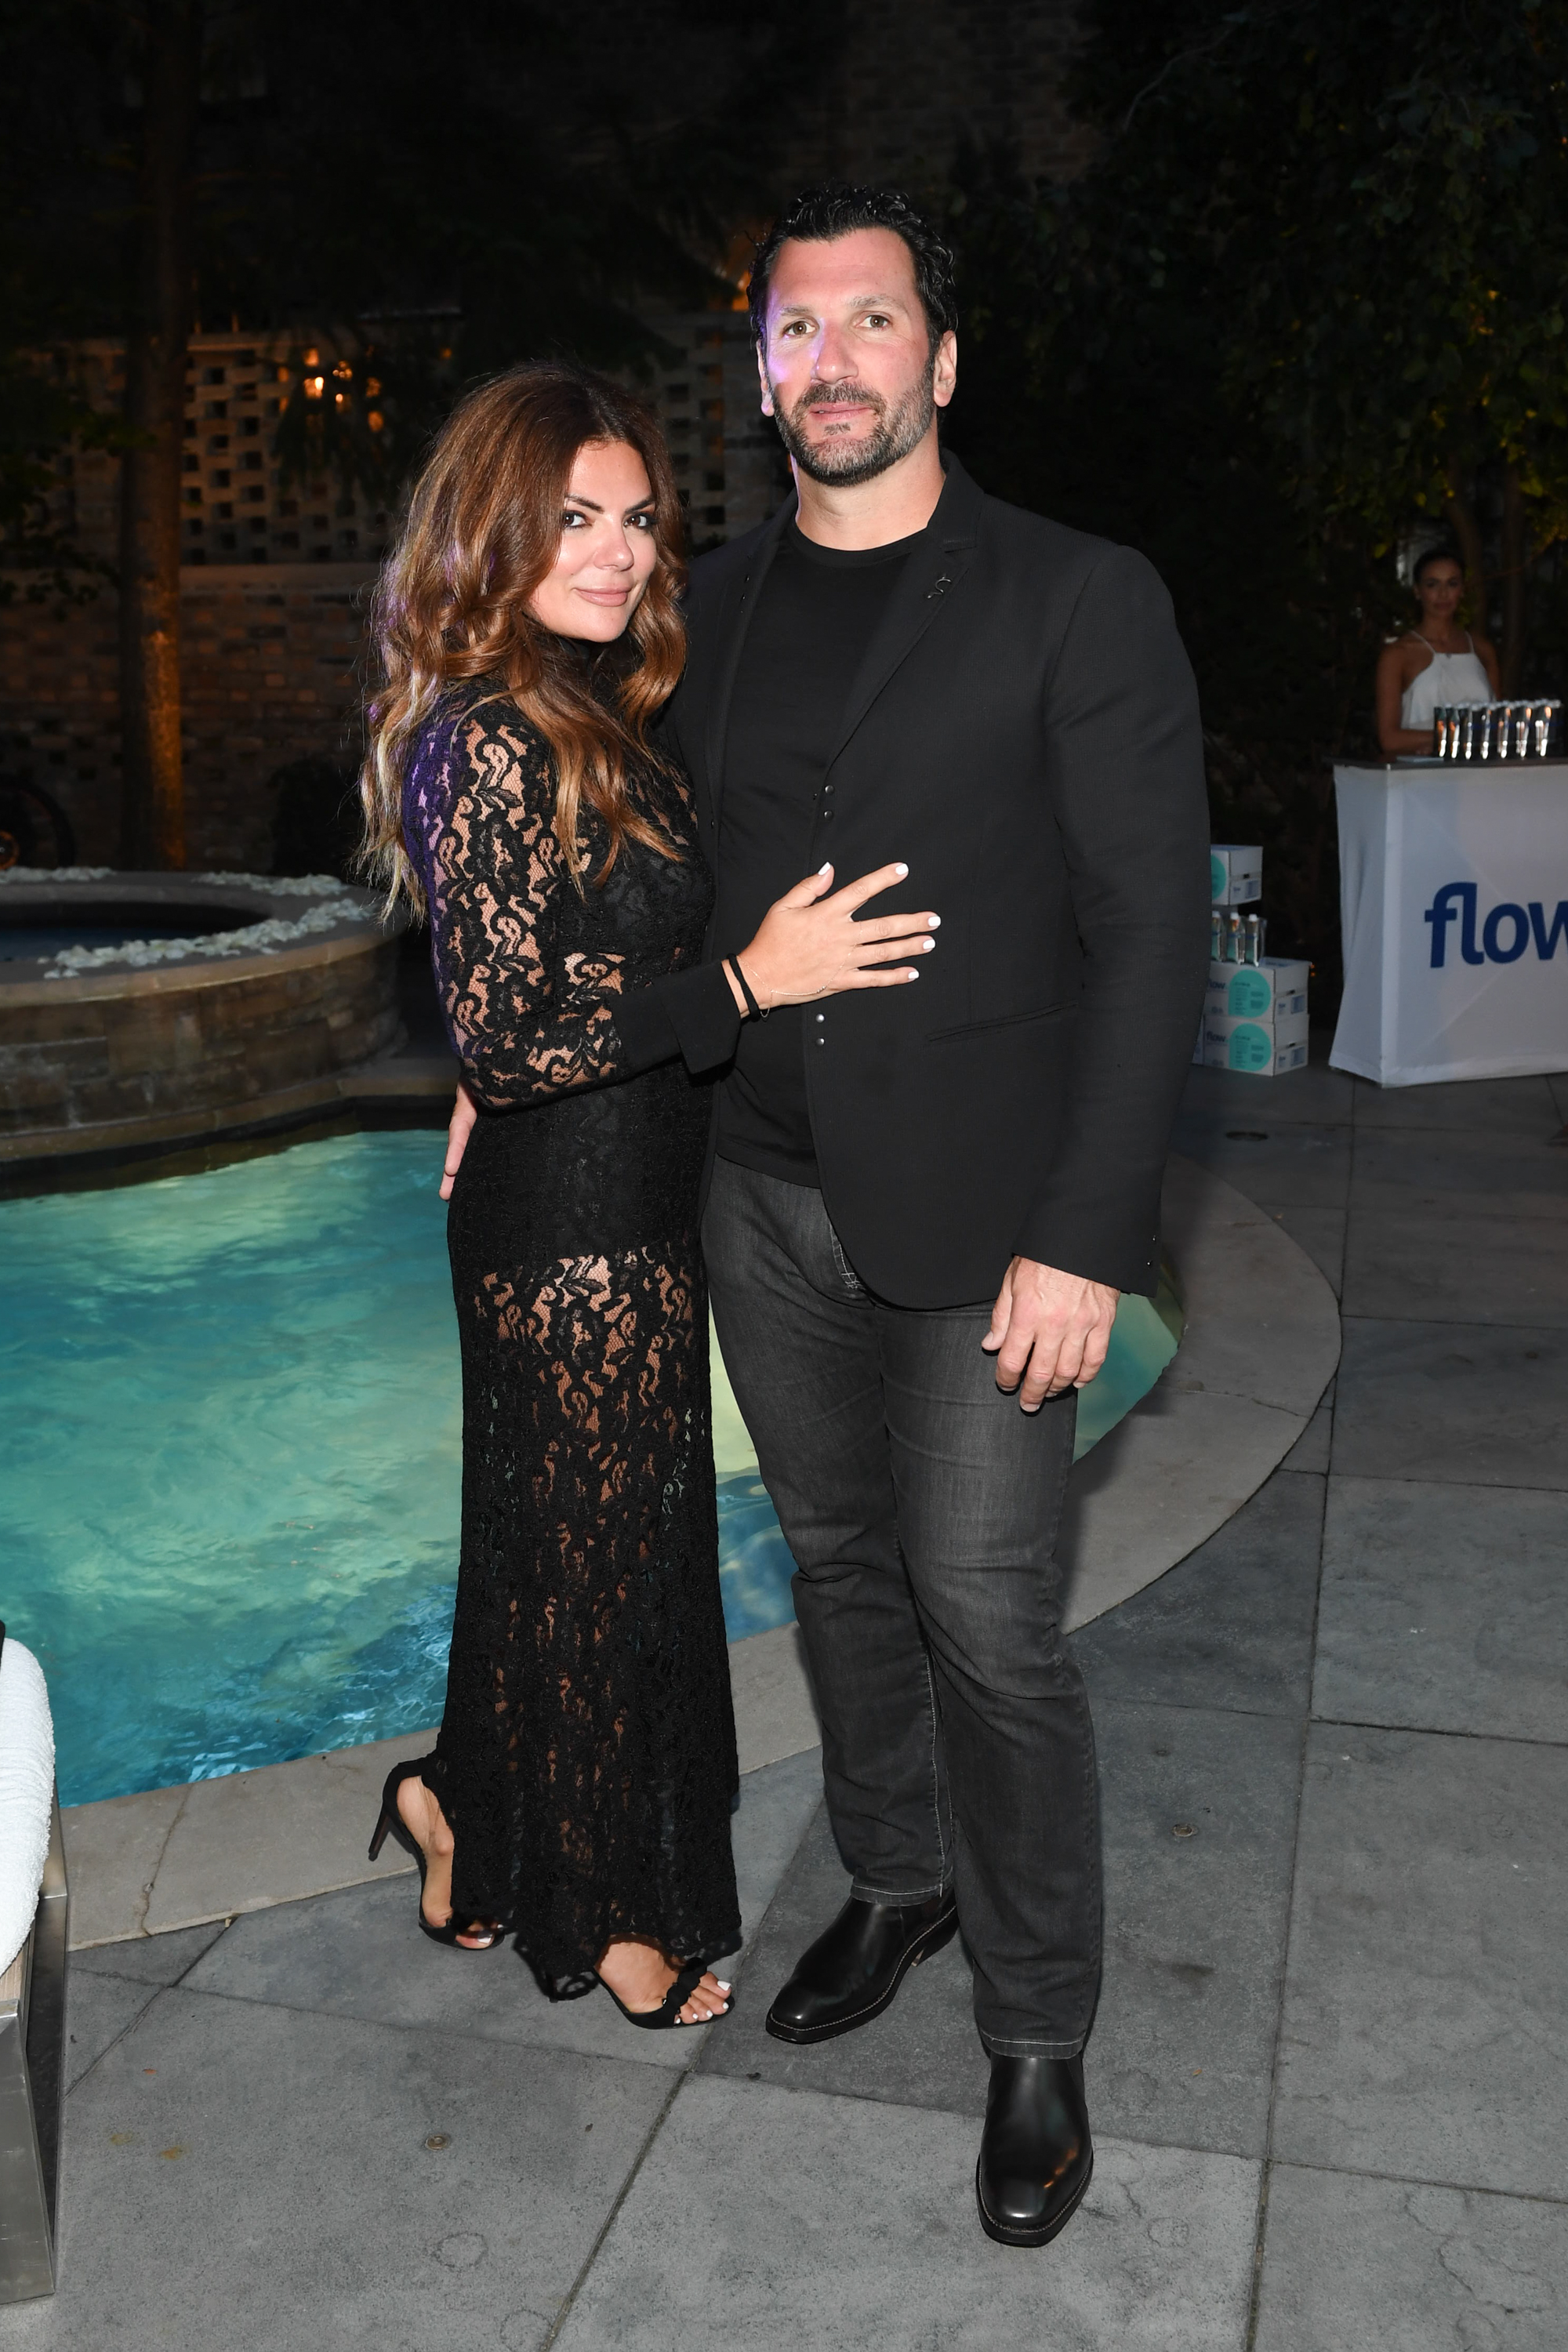 Natasha Koifman, NKPR and Anthony Mantella at NKPR Film Festival Countdown Event. PR by NKPR.